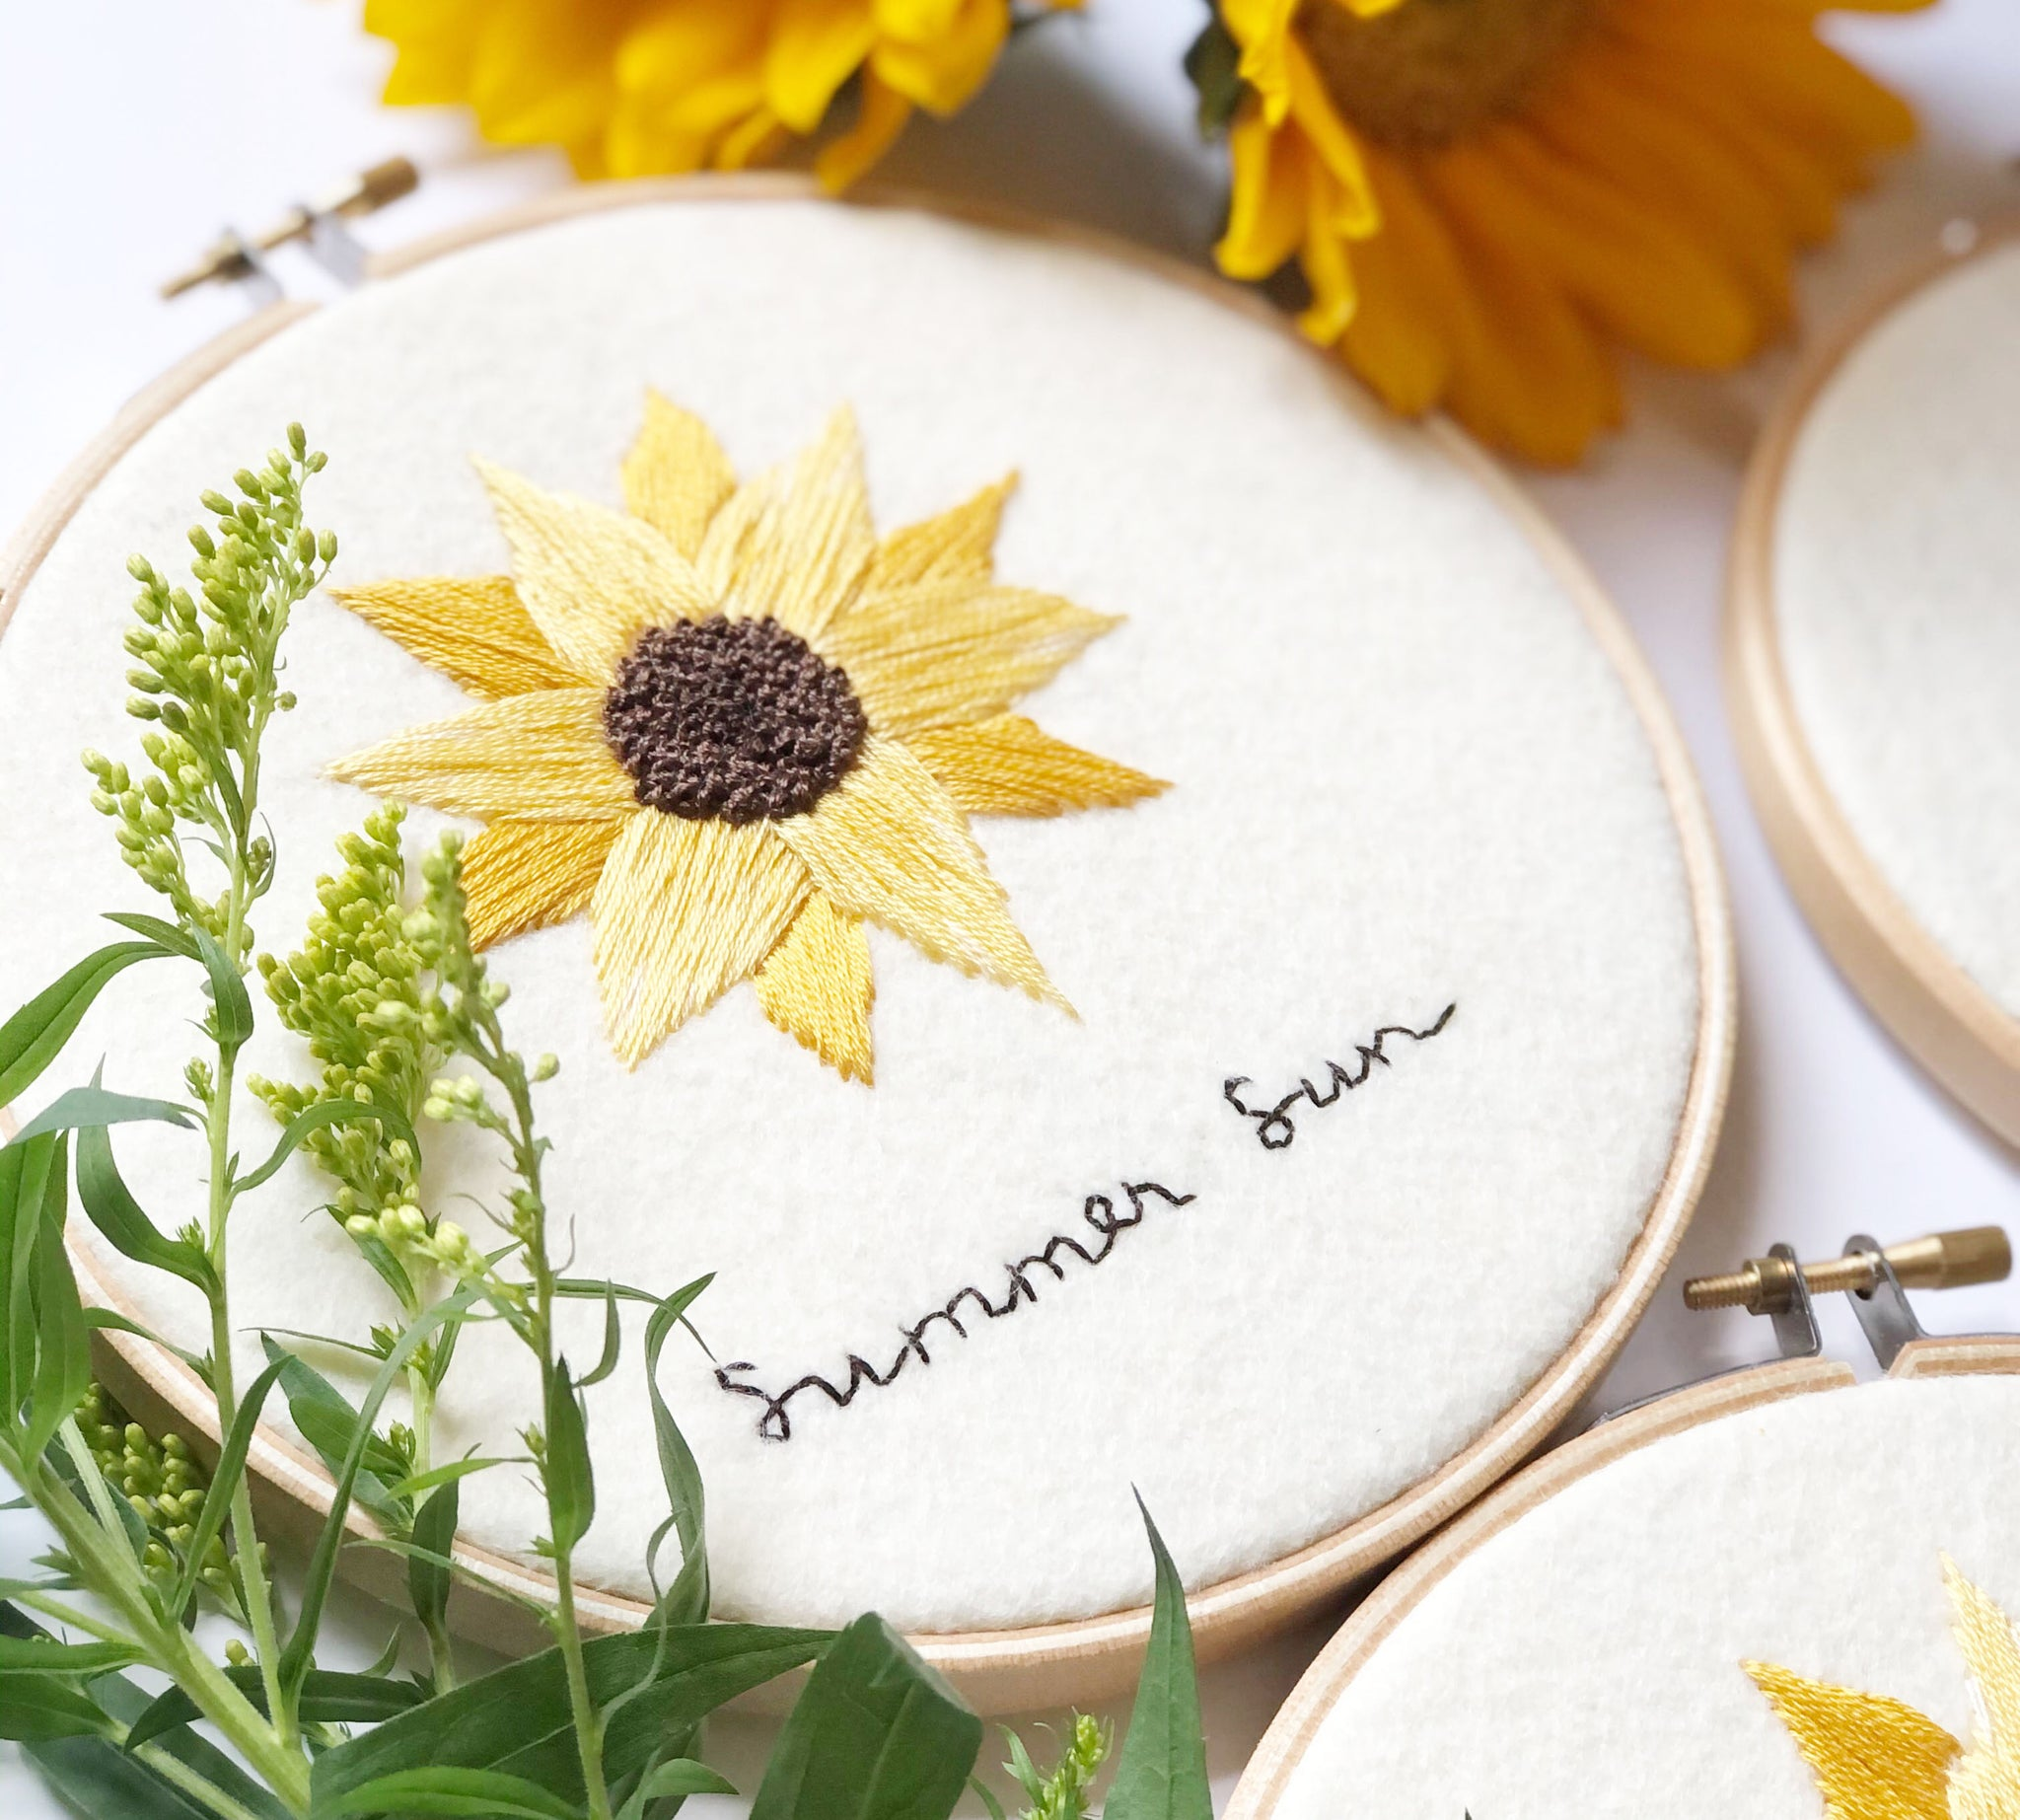 Finished sunflower embroidery